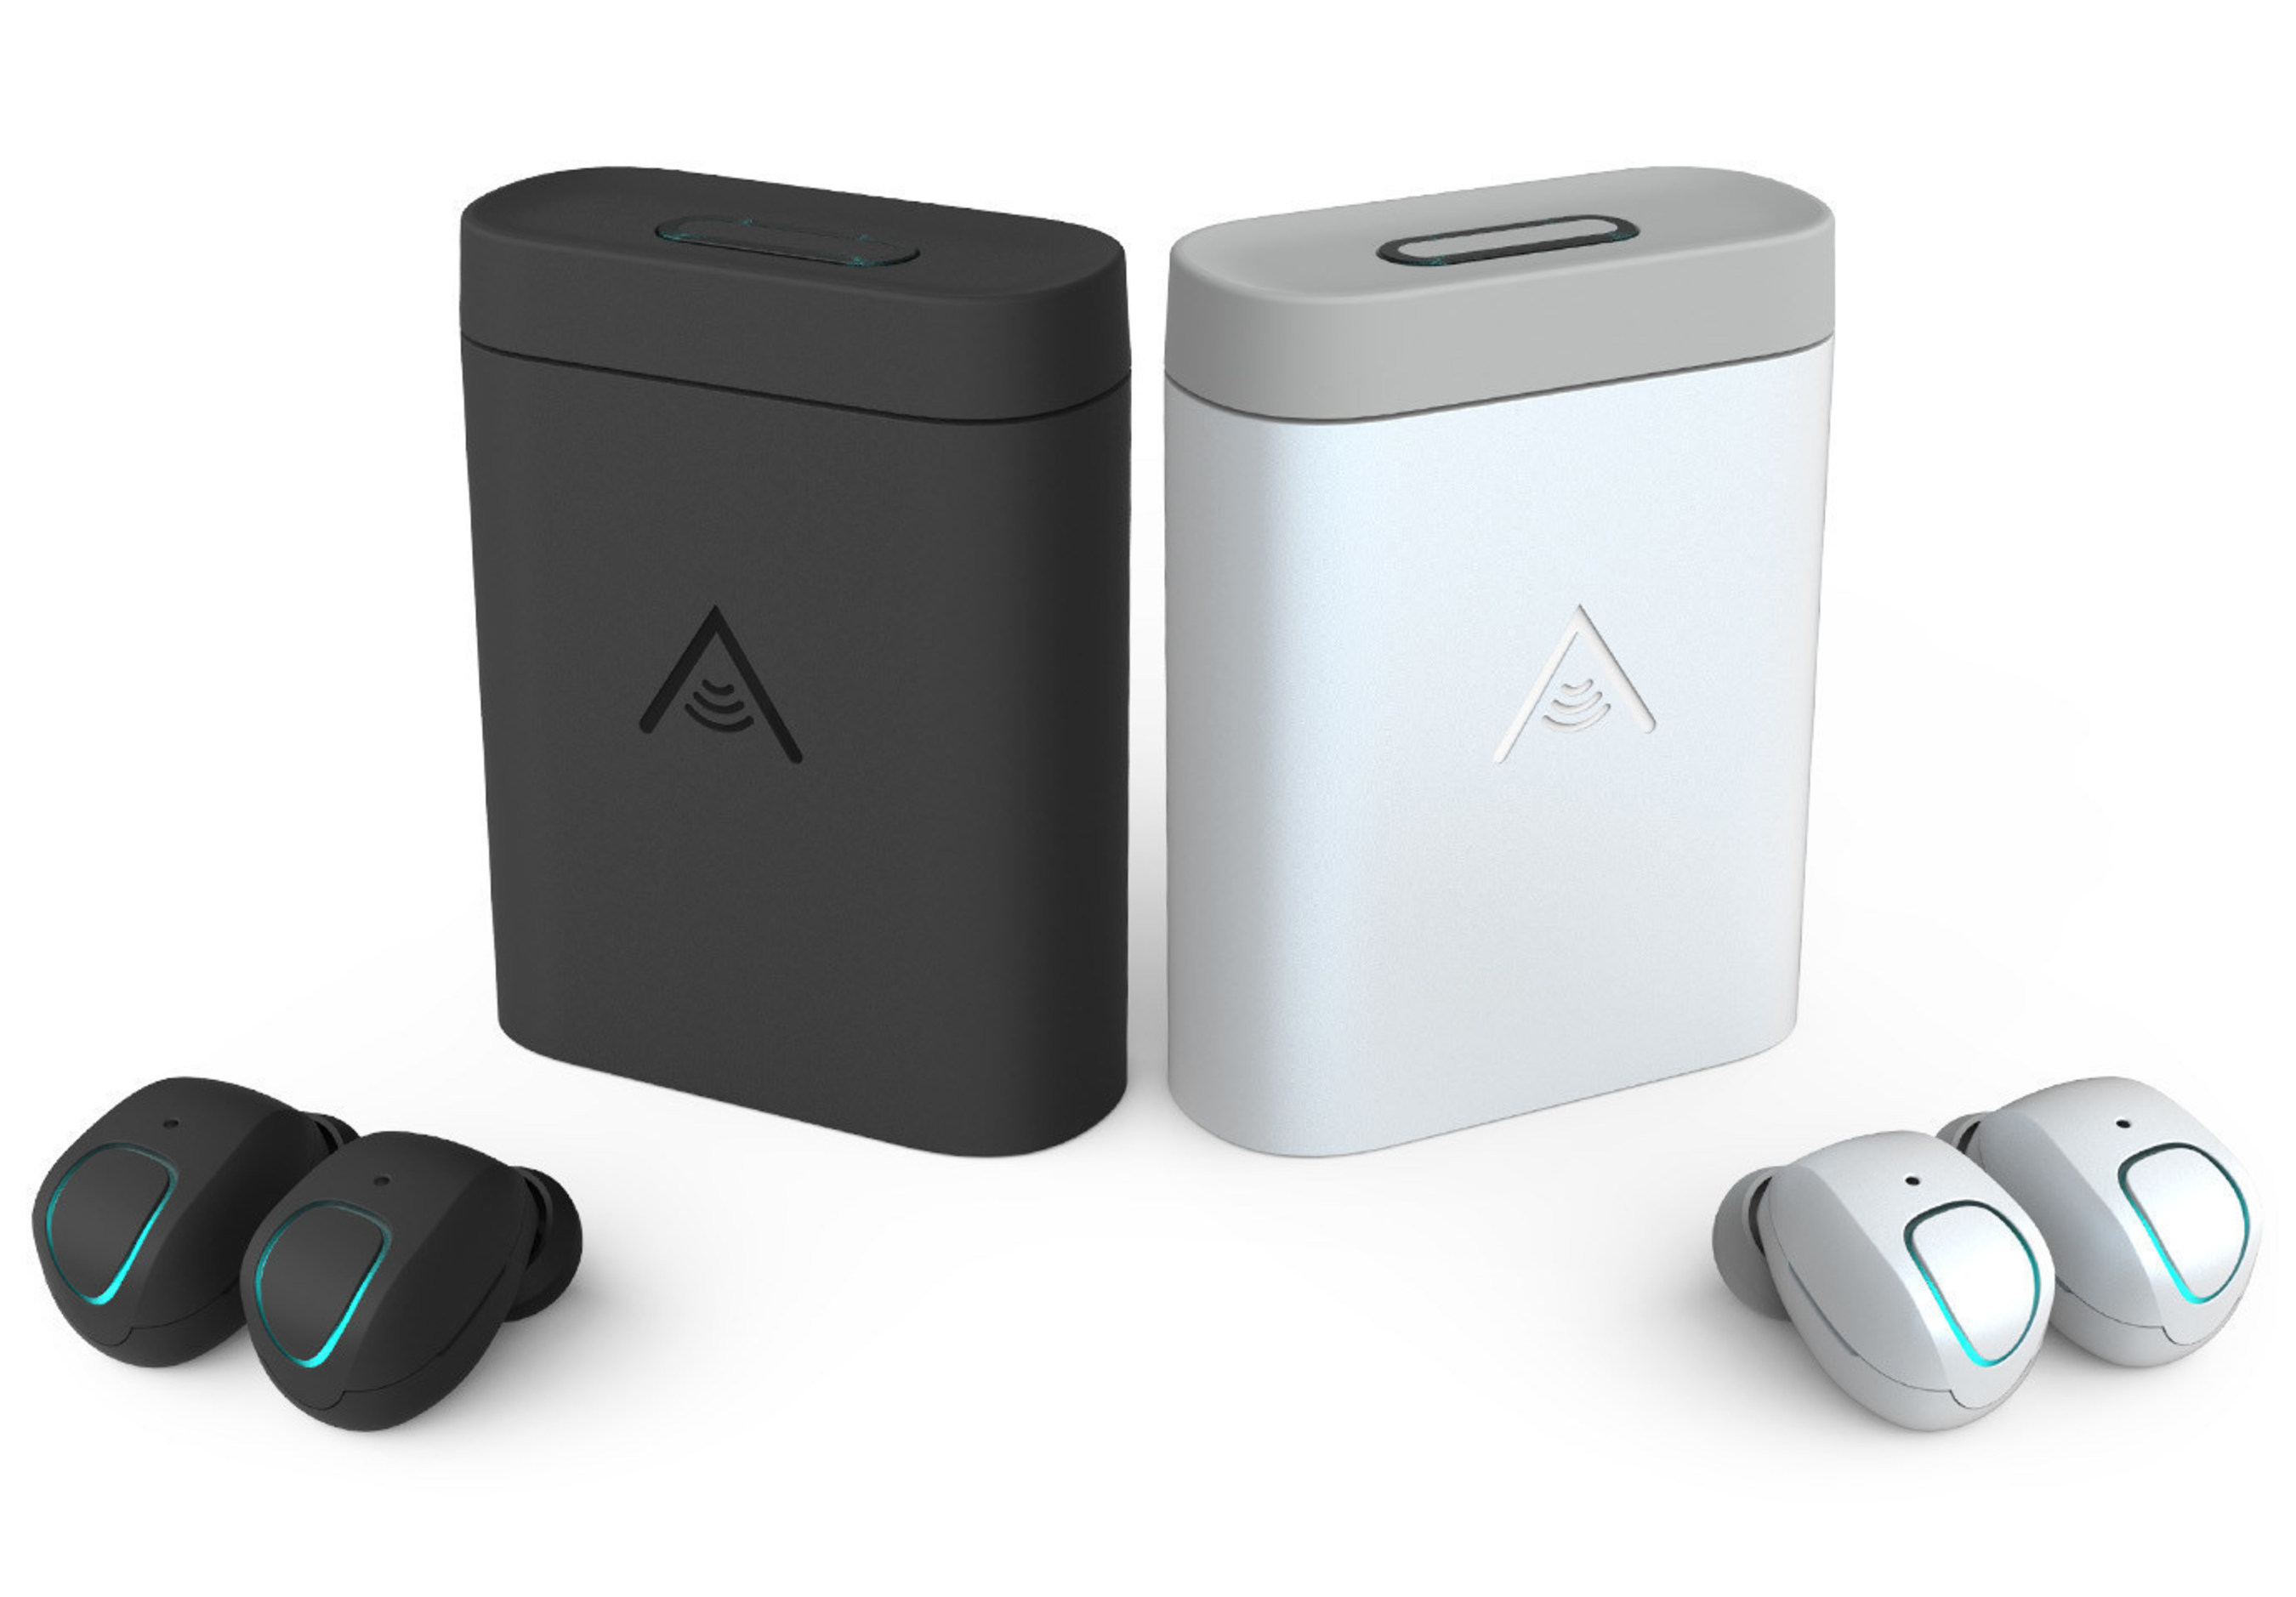 Skybuds and Skydock featured in Charcoal and Pearl